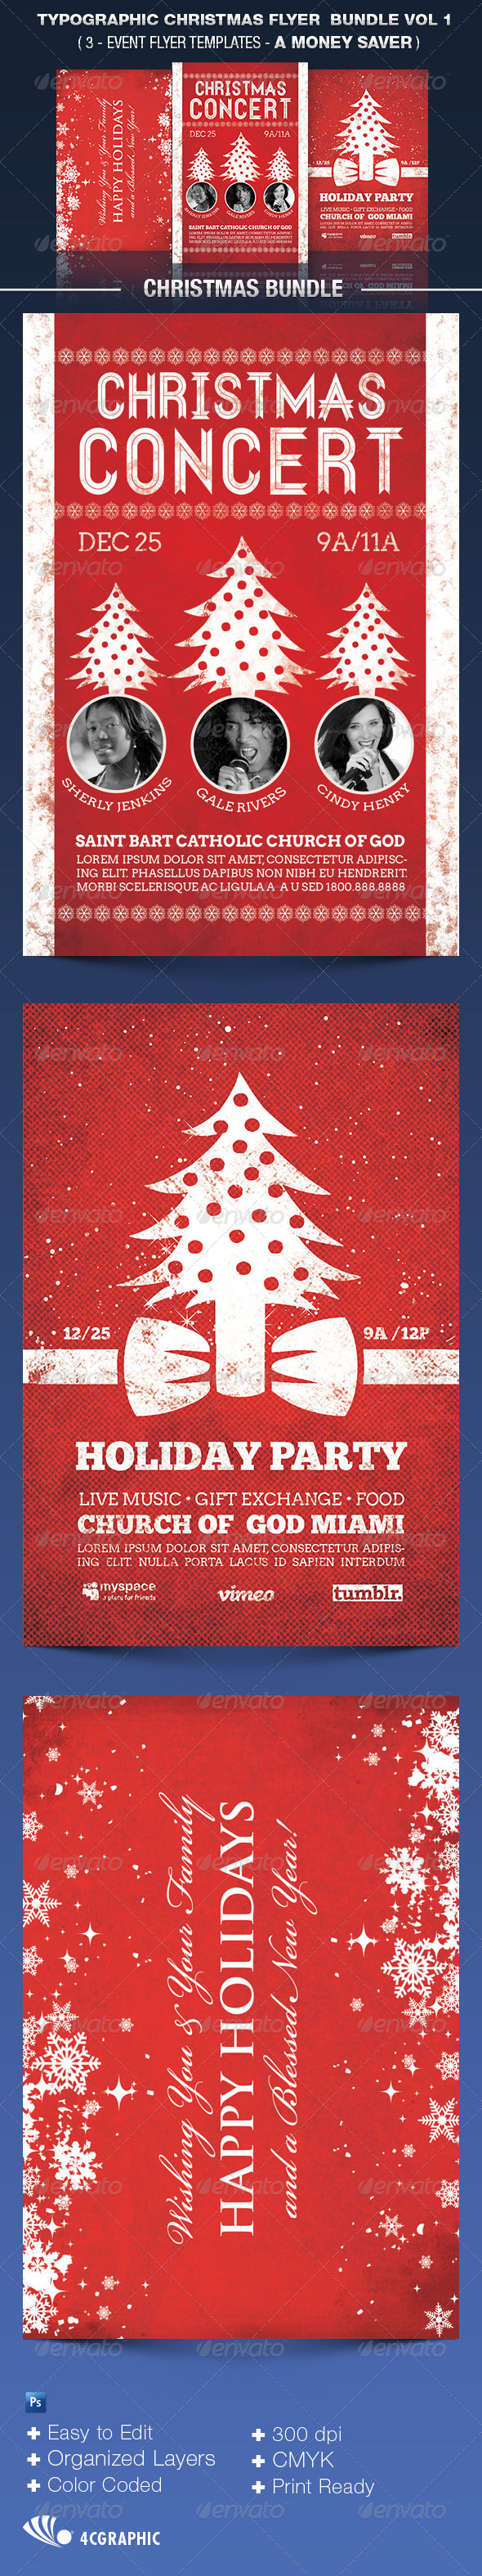 The Typographic Christmas Flyer Bundle Vol 1. - Events Flyers